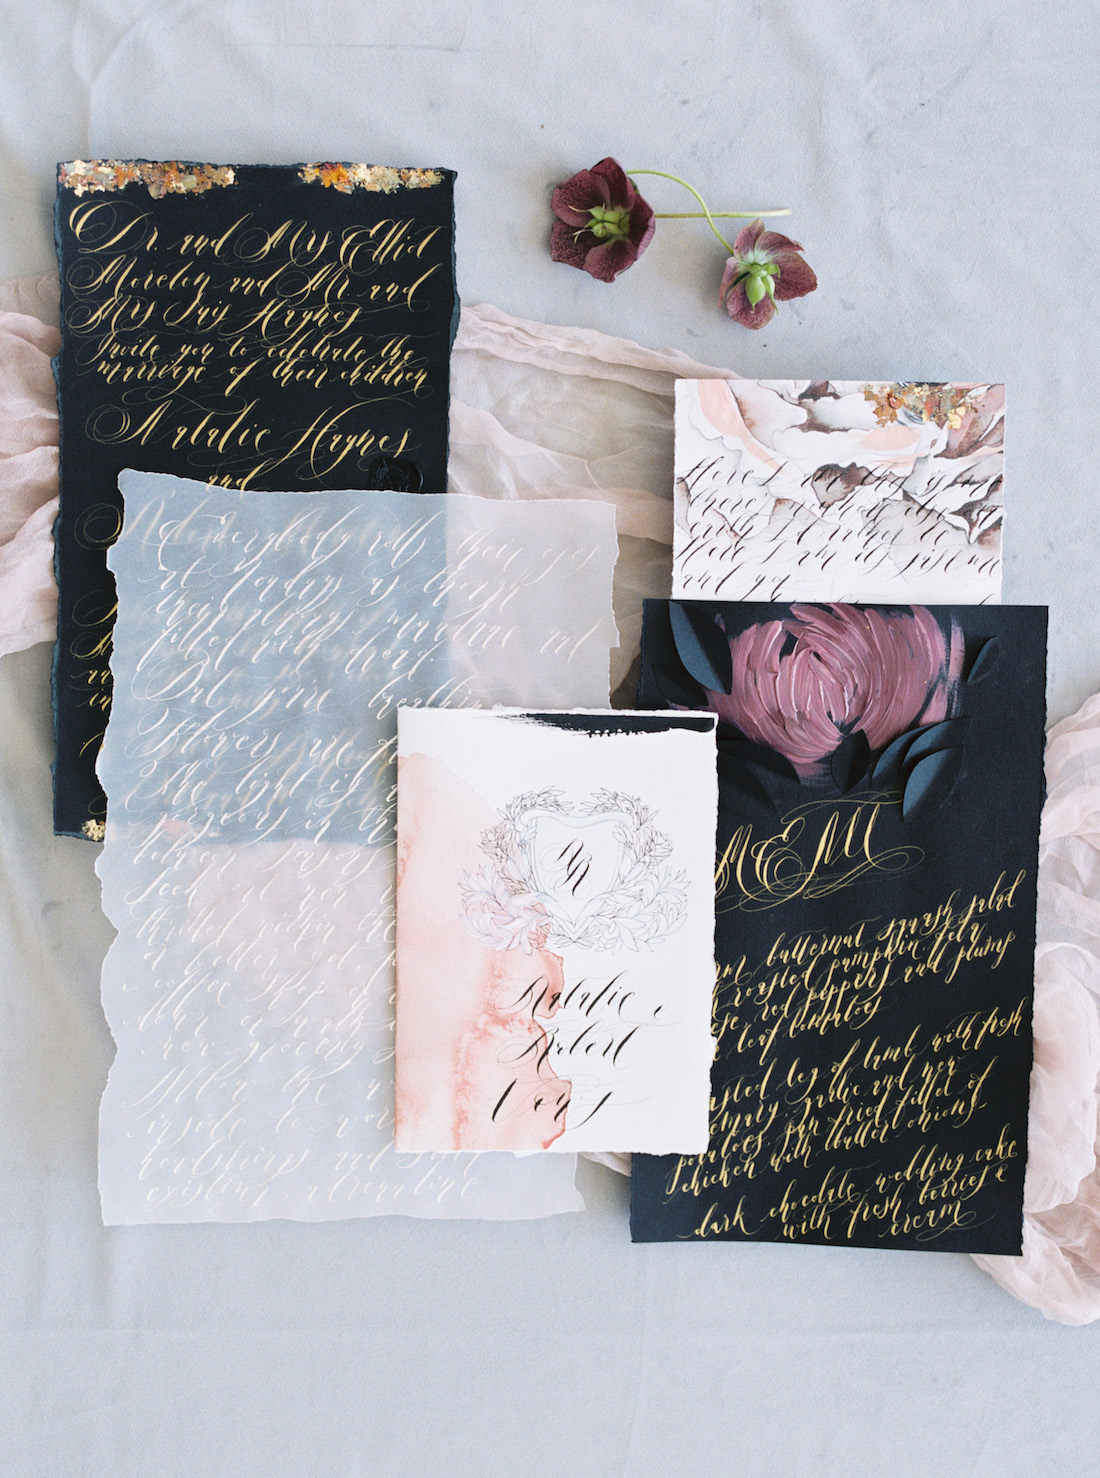 London Wedding Invitations with vow book wedding menu and large black wedding invite